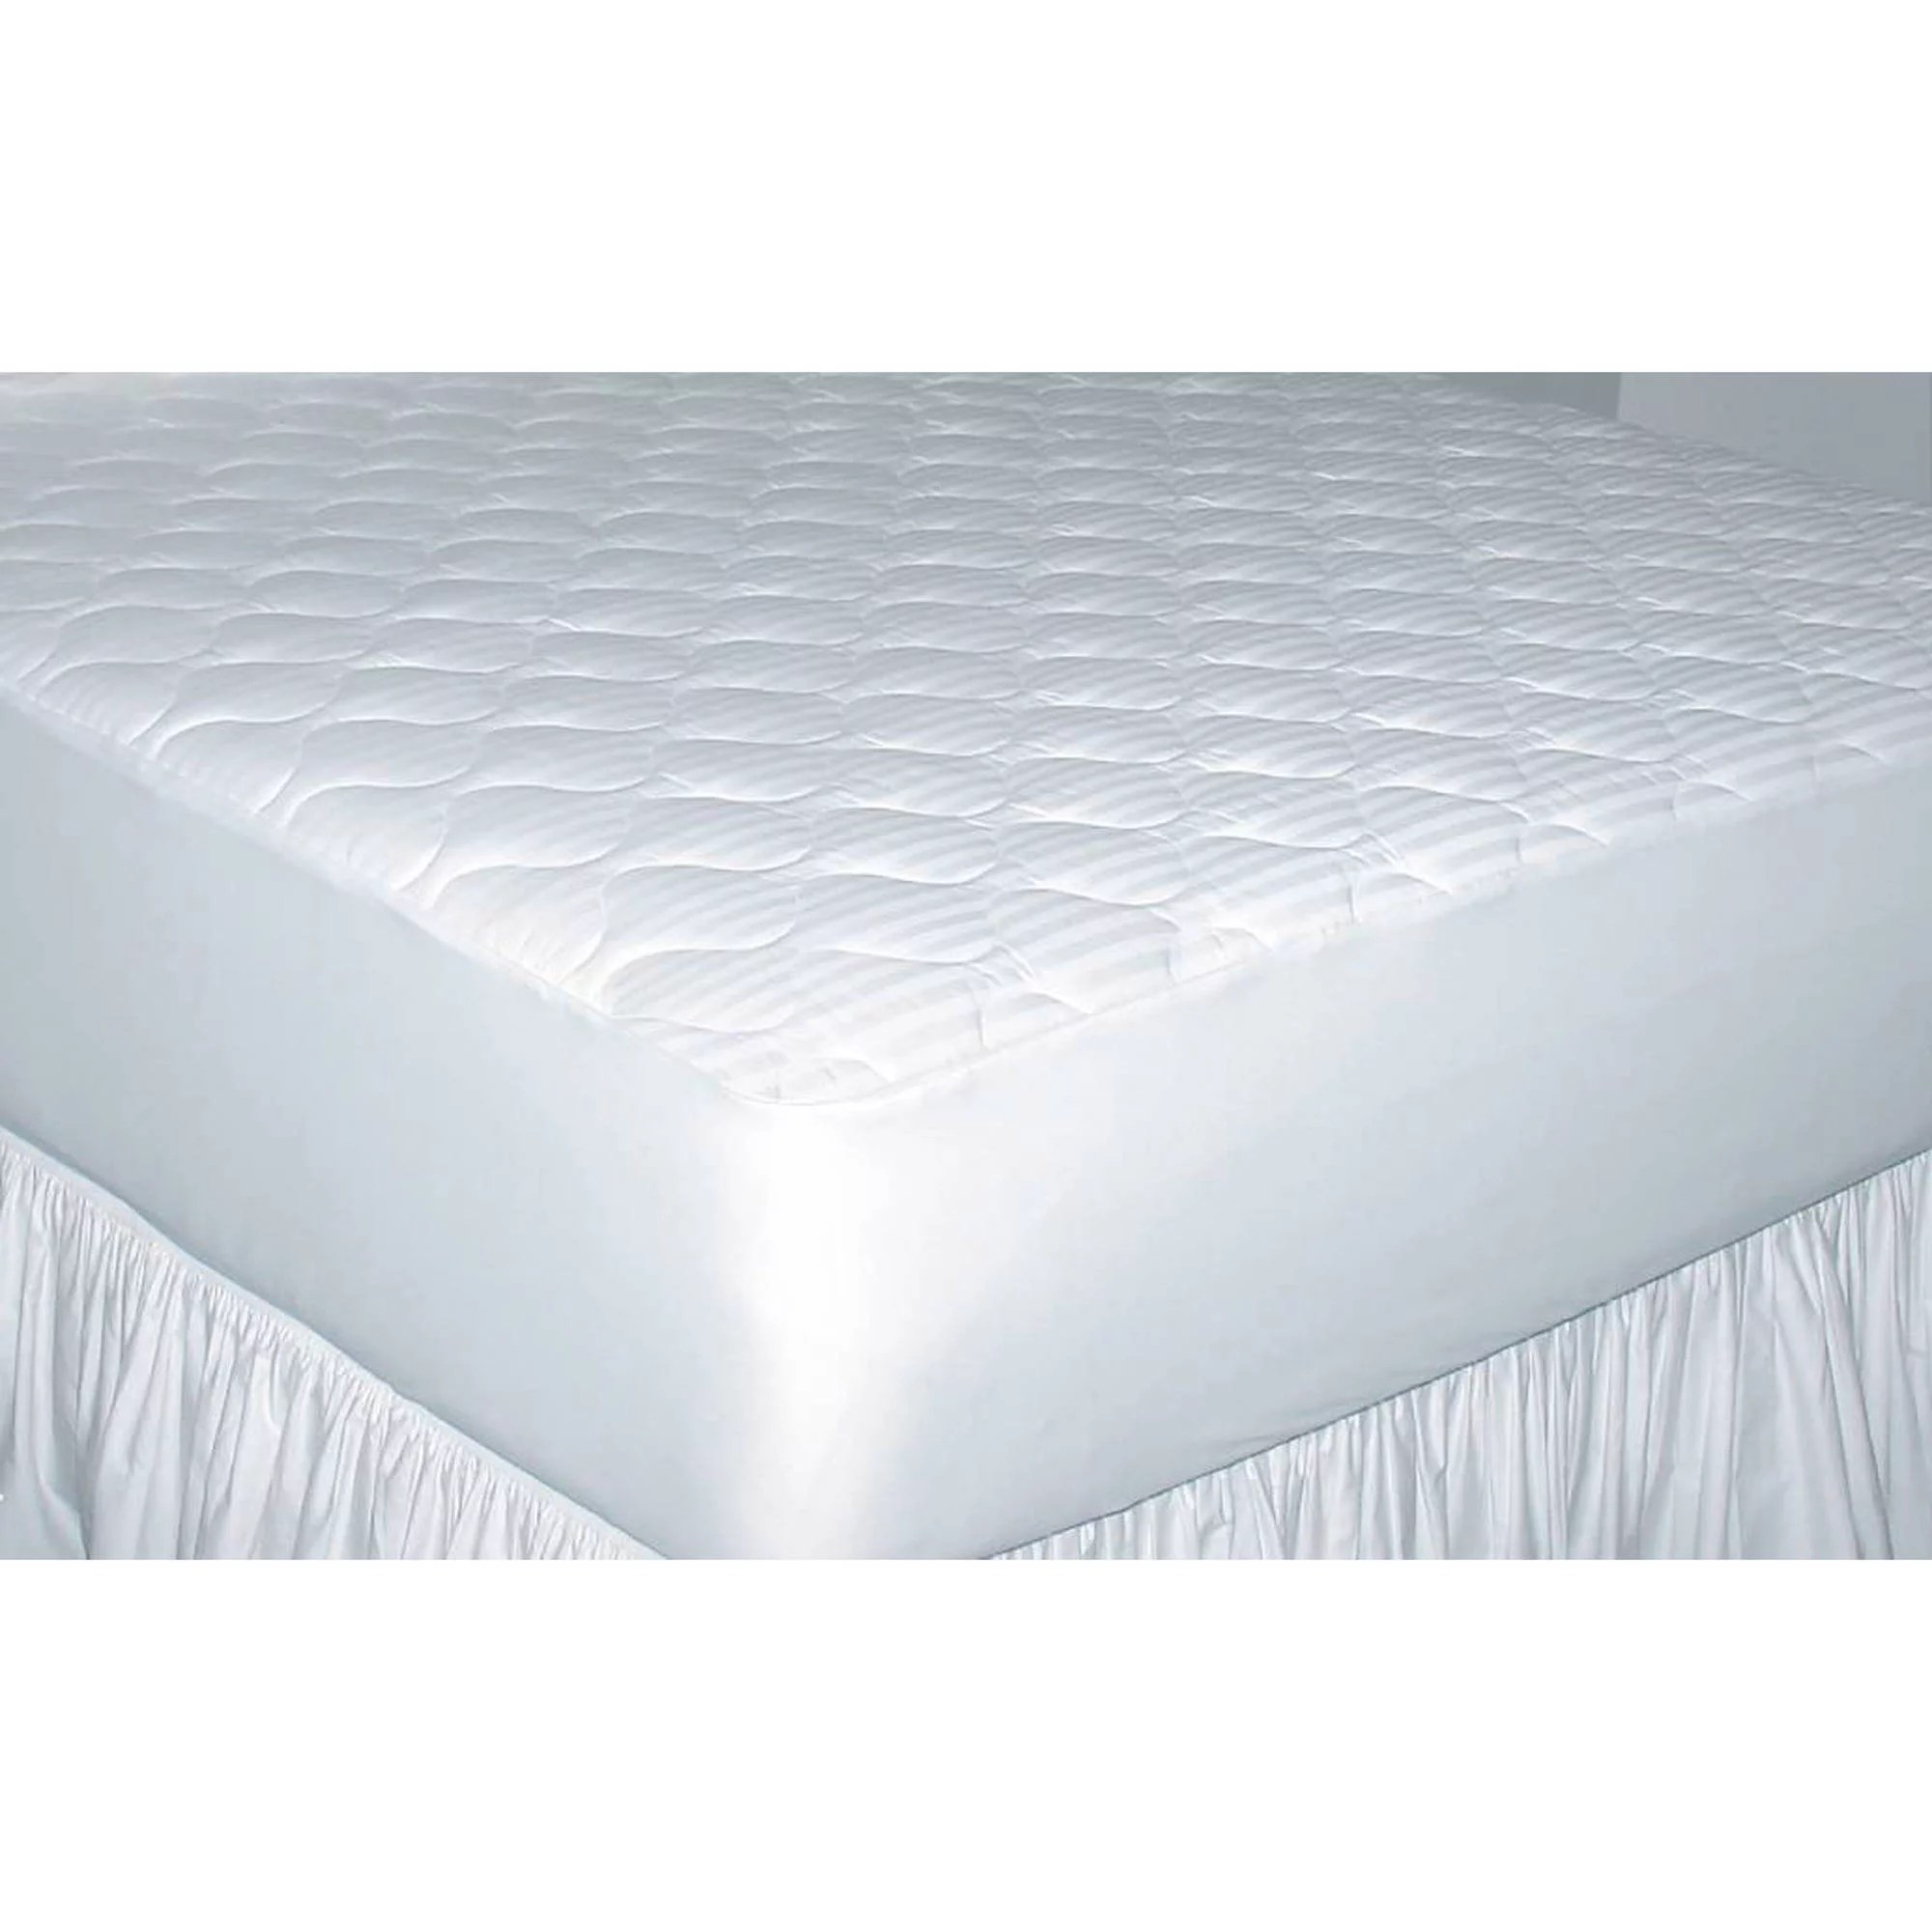 Double Bed Mattress Cover Quiet Comfort Waterproof Mattress Pad